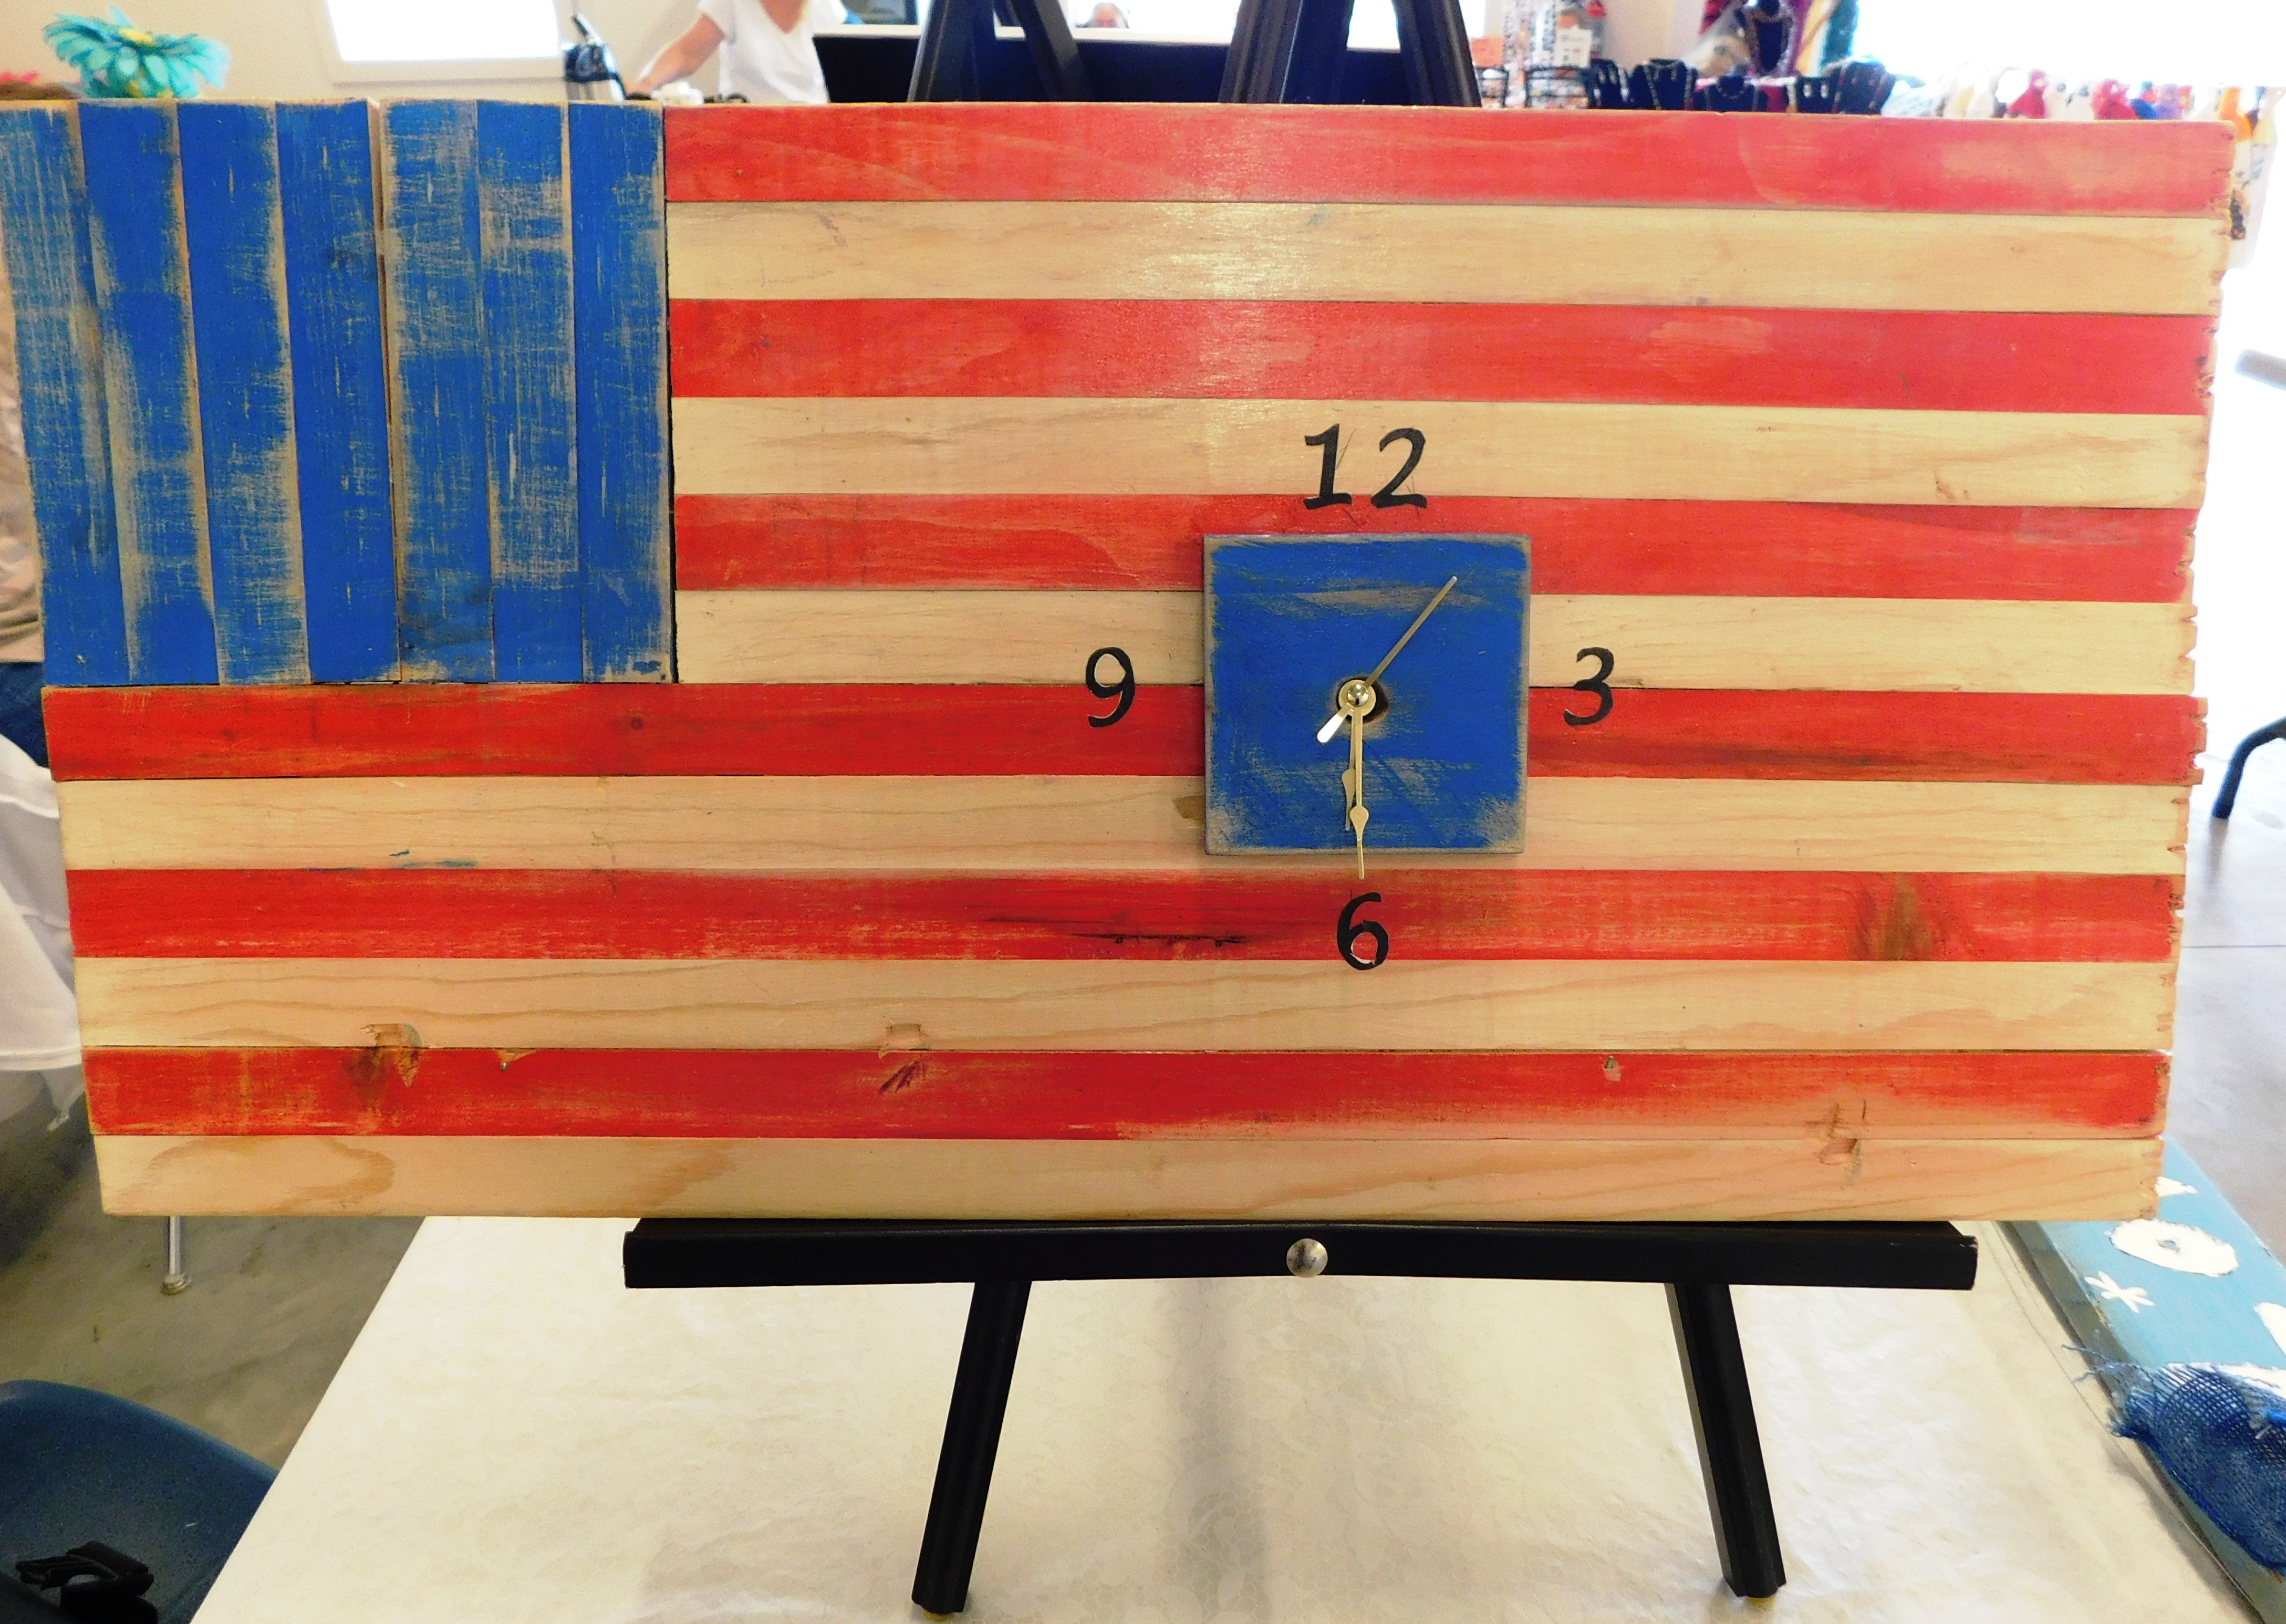 "American Flag Clock by Ervin B and Brian S 12.5""x24"" $60.00"